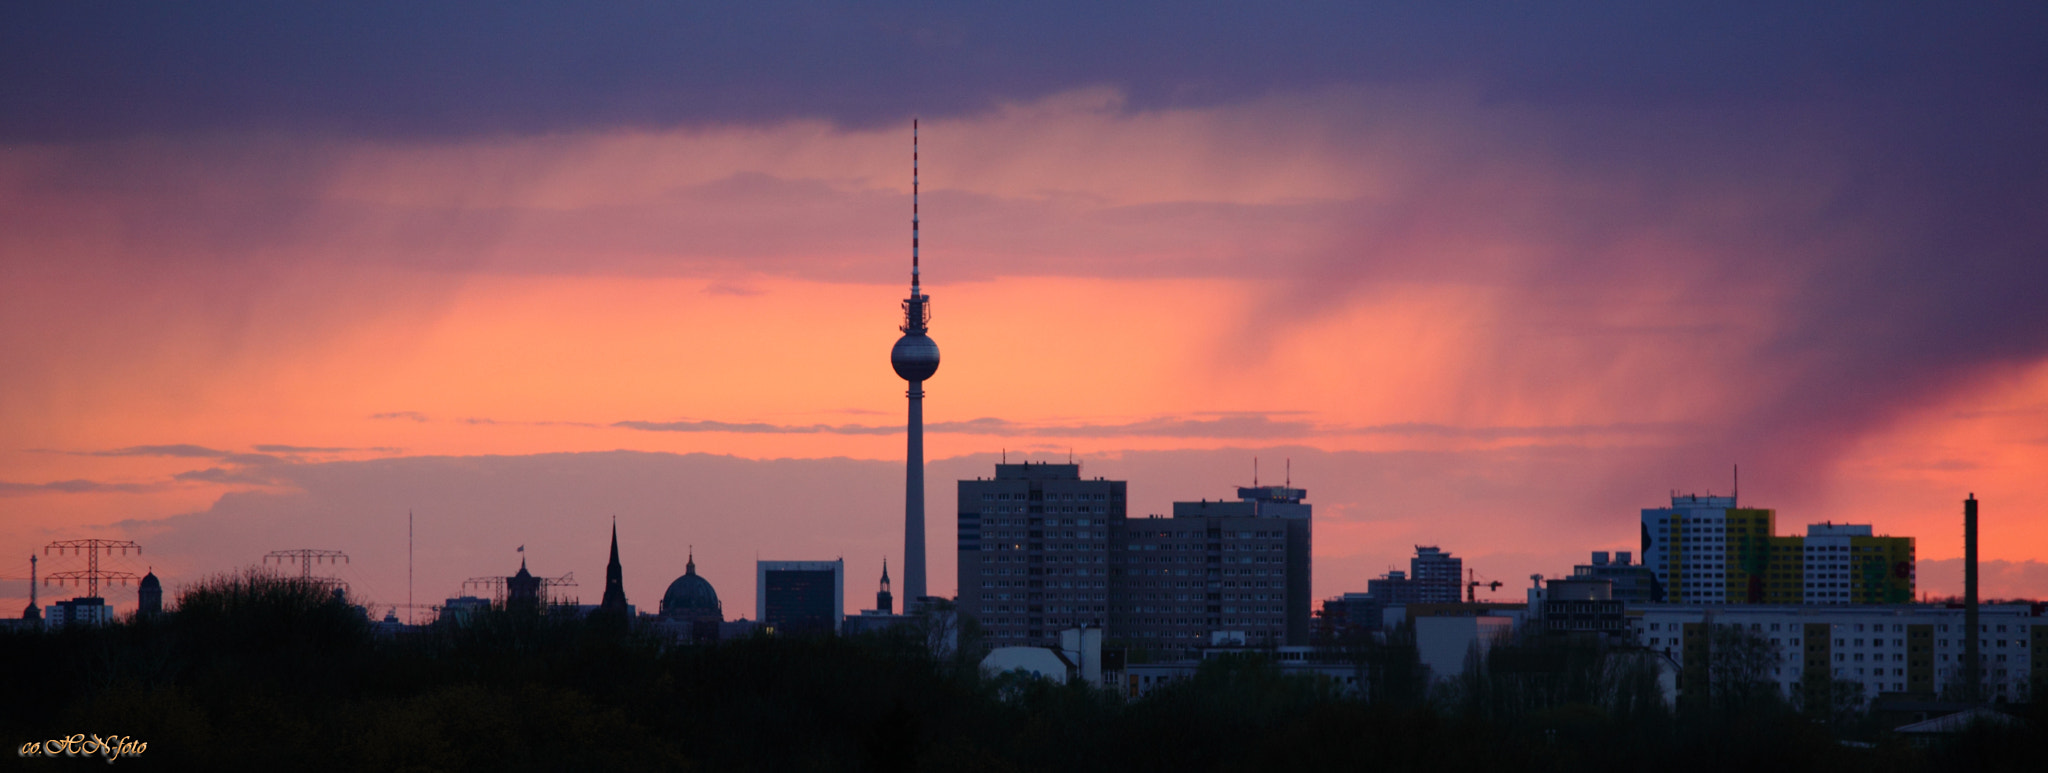 Photograph Berlin by Heiko Ni. aus T. on 500px